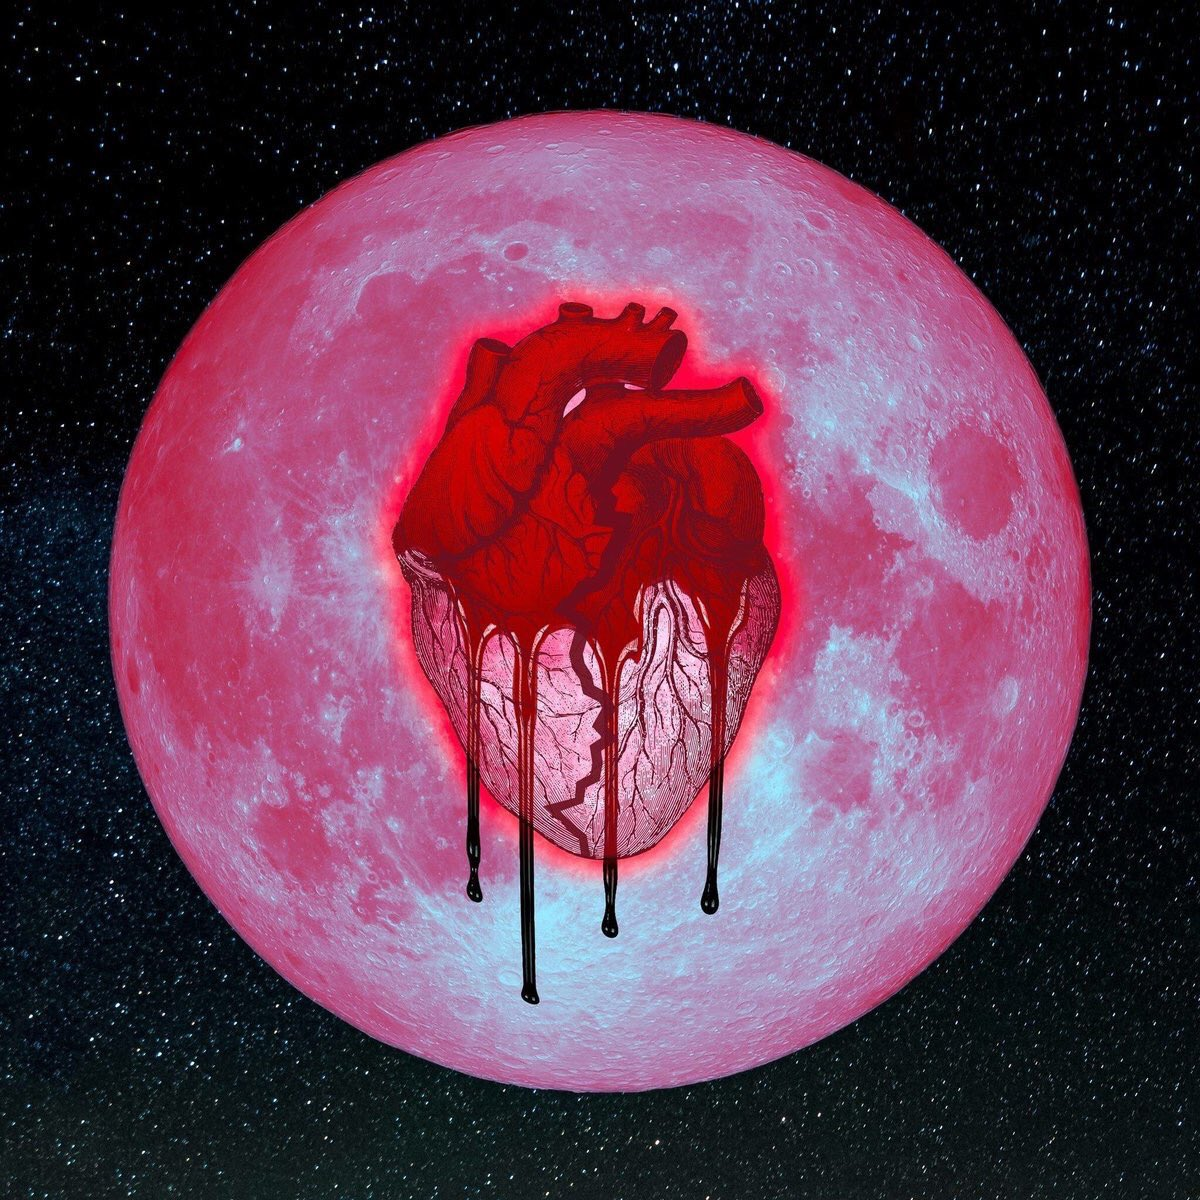 #HeartbreakOnAFullMoon ���� https://t.co/DSgT1oHFQG https://t.co/ol3IpqSktA